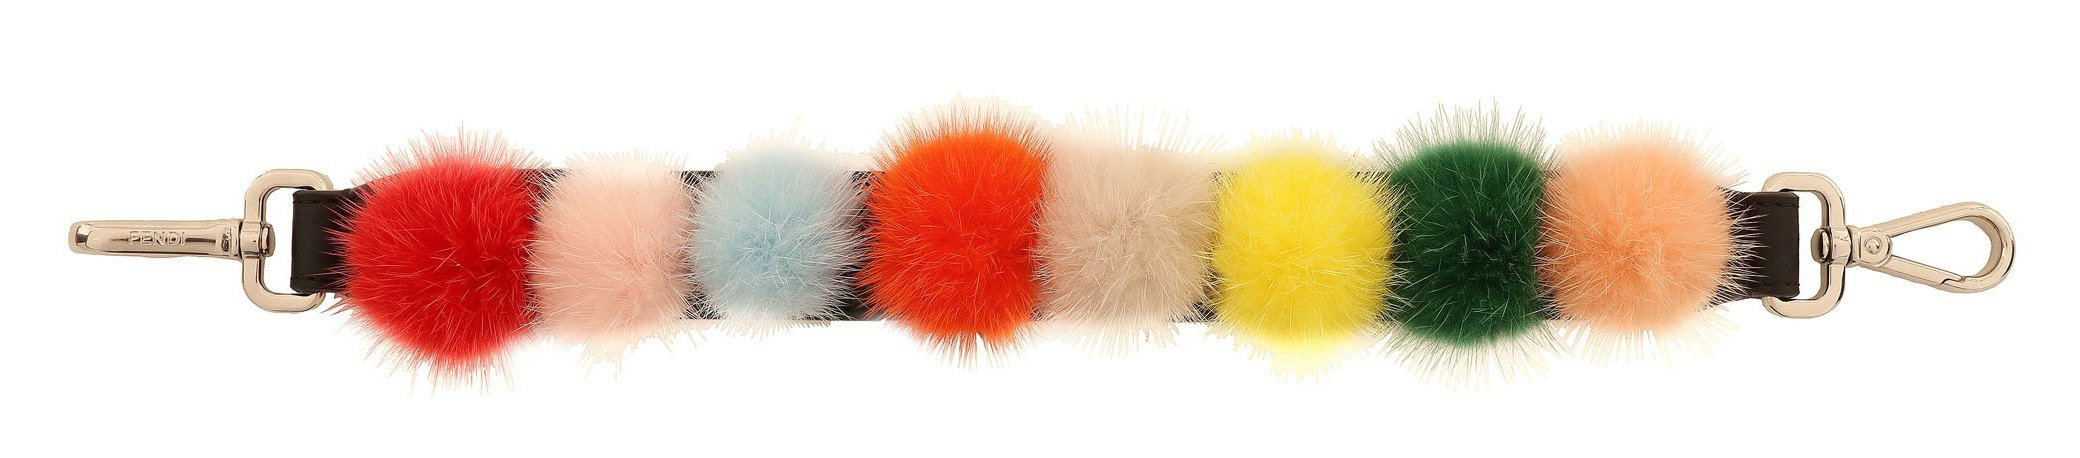 02_FENDI Multicolour Fur Pompons_Packshot_Mini Strap You